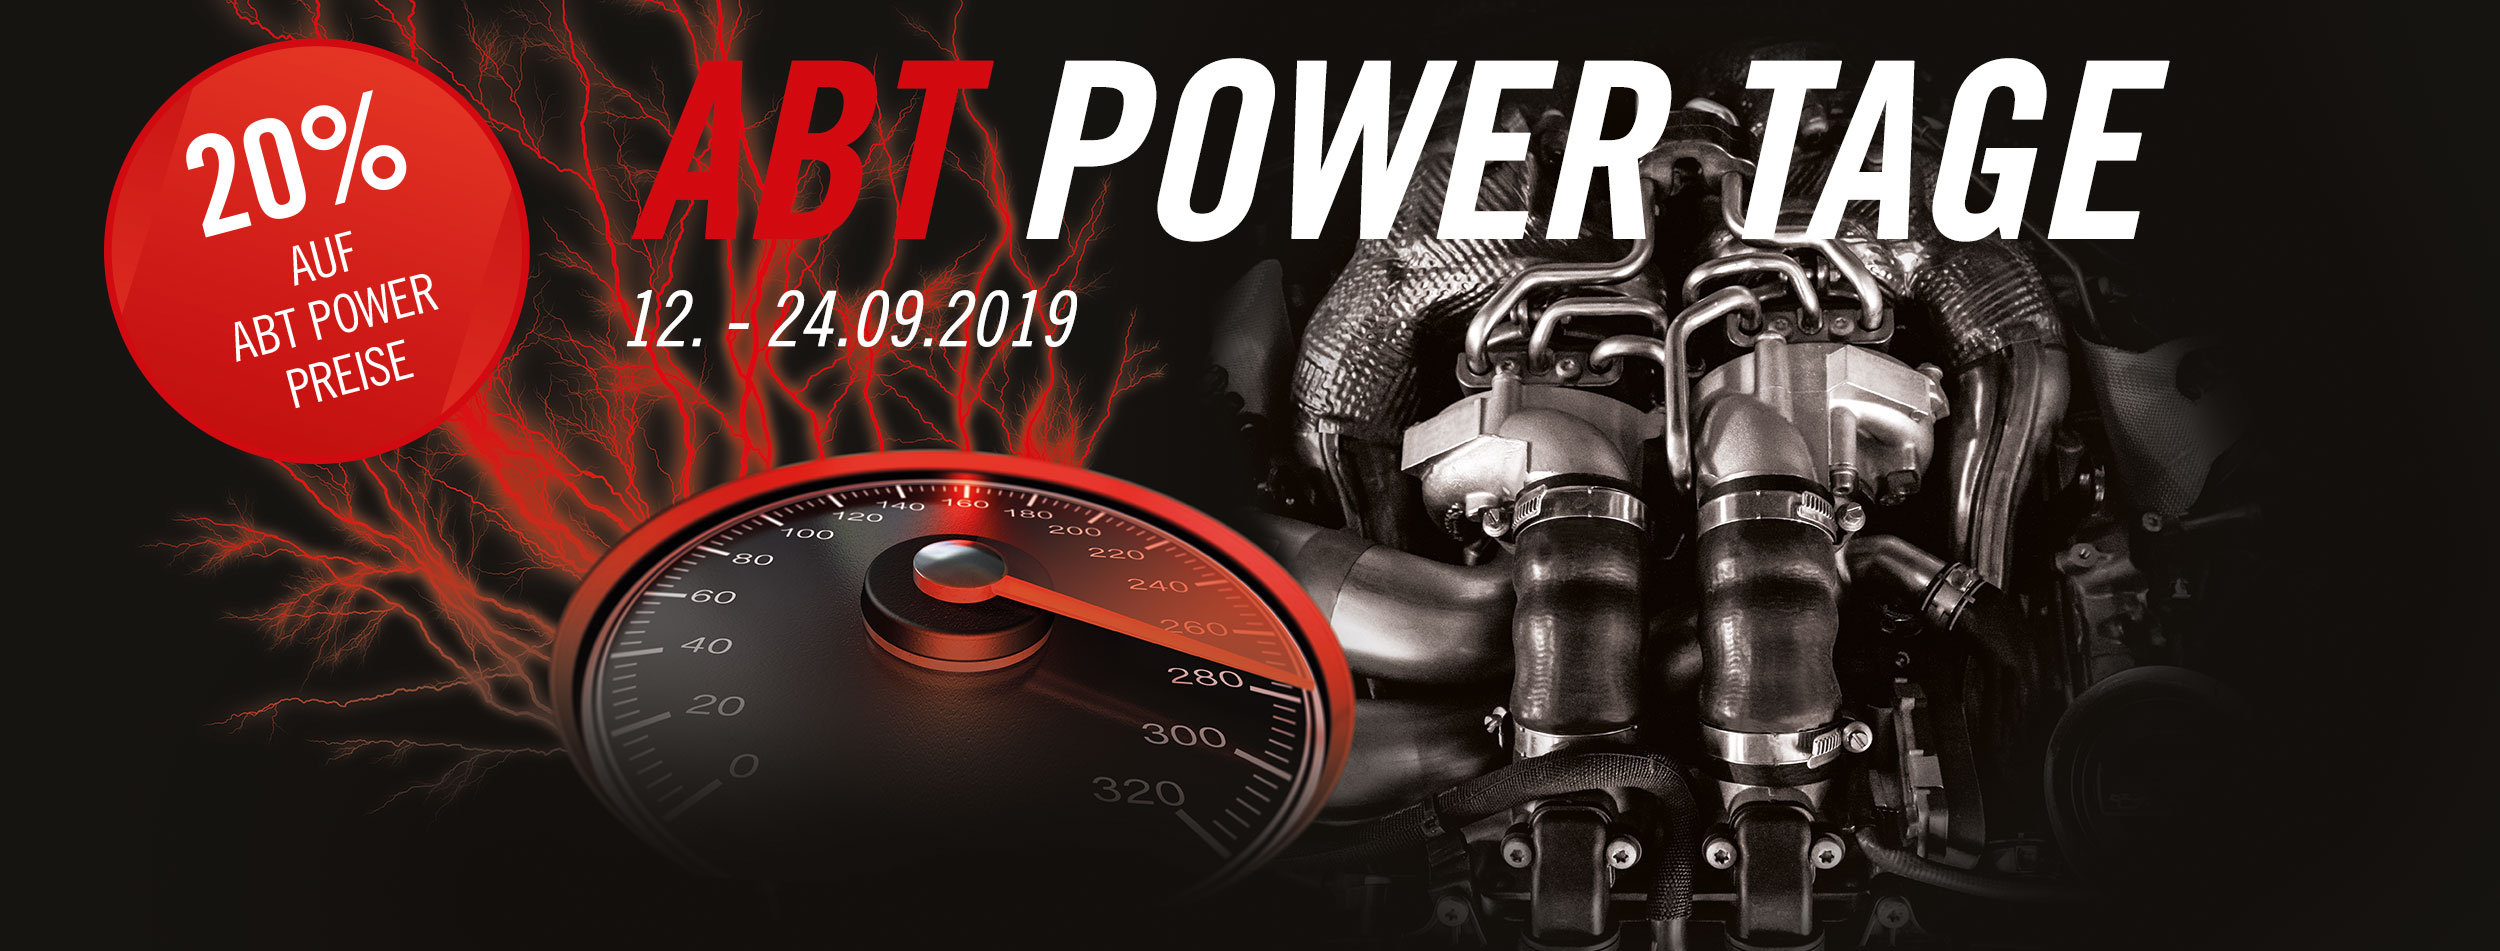 ABT_Power_Tage_Sept_2019_2500x951px